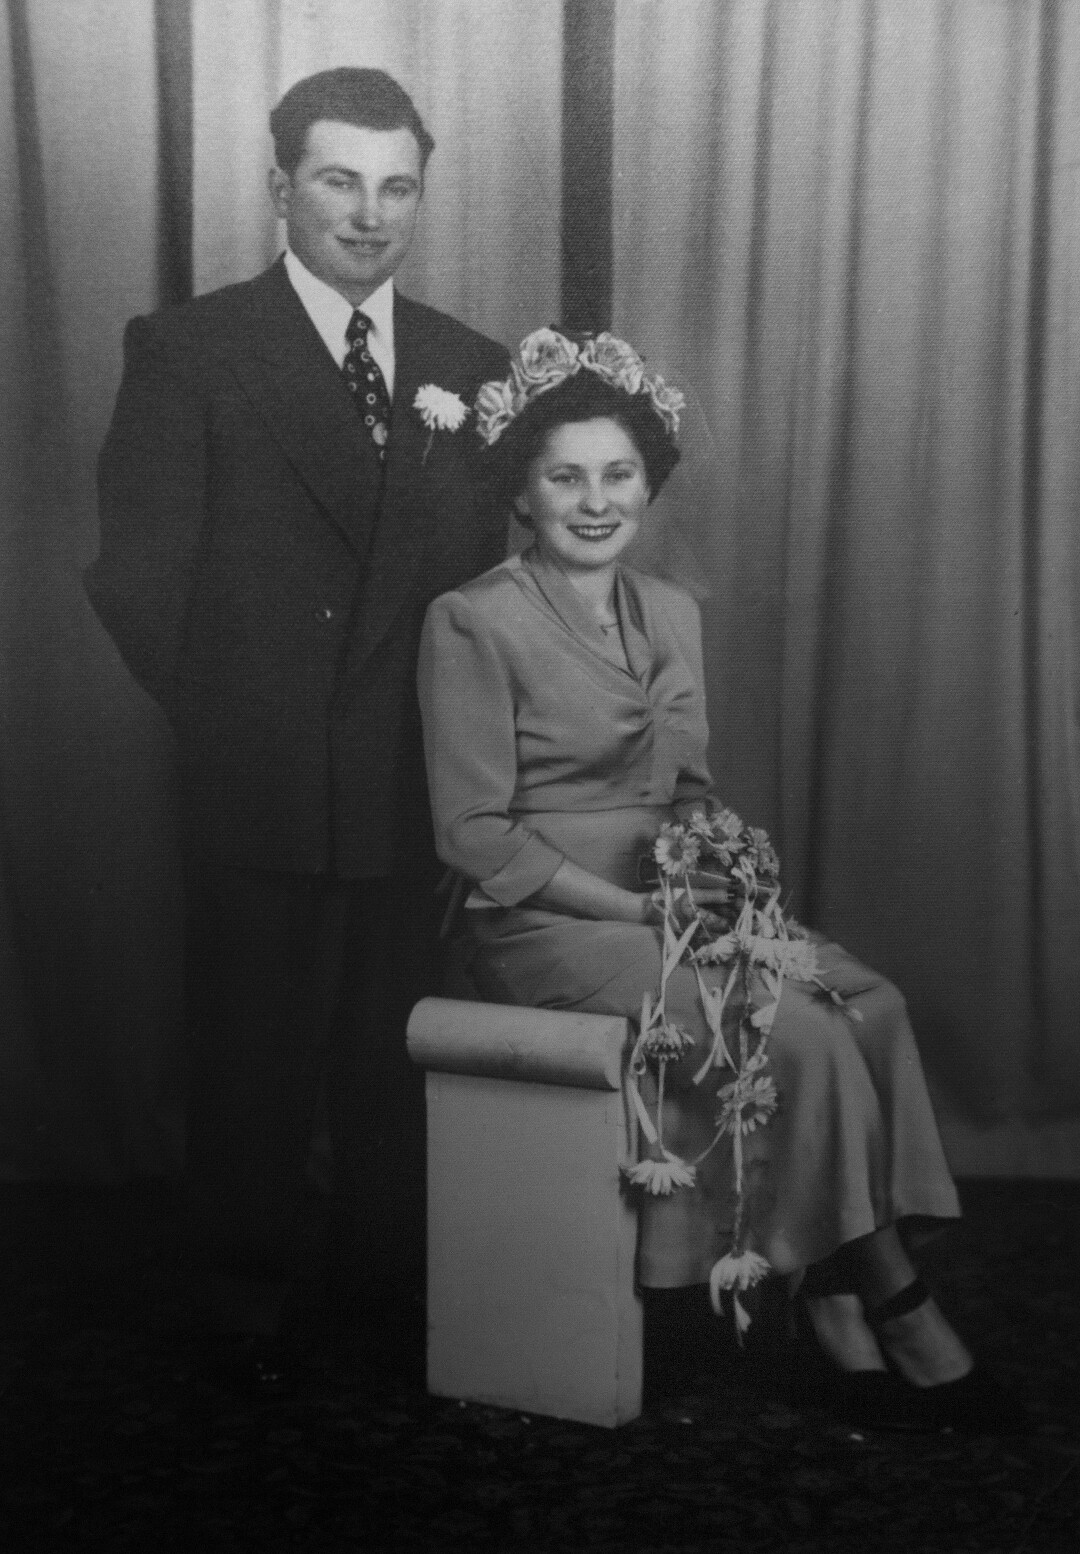 A photo of Hakman and his first wife, Esther, on their wedding day on Dec. 31, 1949, hangs in Hakman's Beverly Hills home.